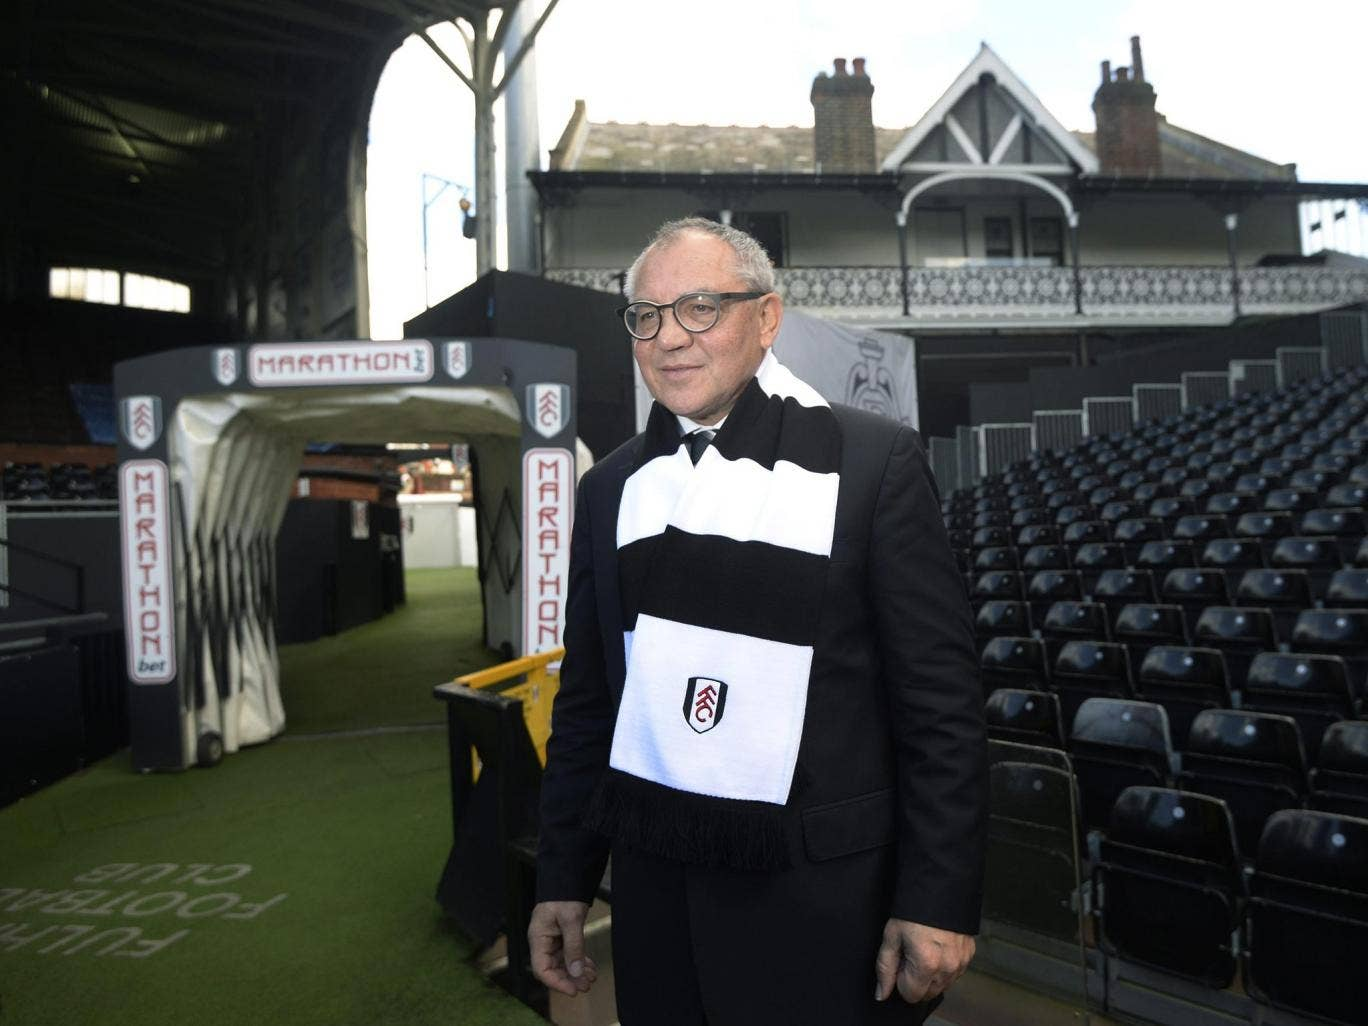 New Fulham manager Felix Magath has wasted no time in instituting a tougher training regime ahead of today's six-pointer with West Bromwich Albion